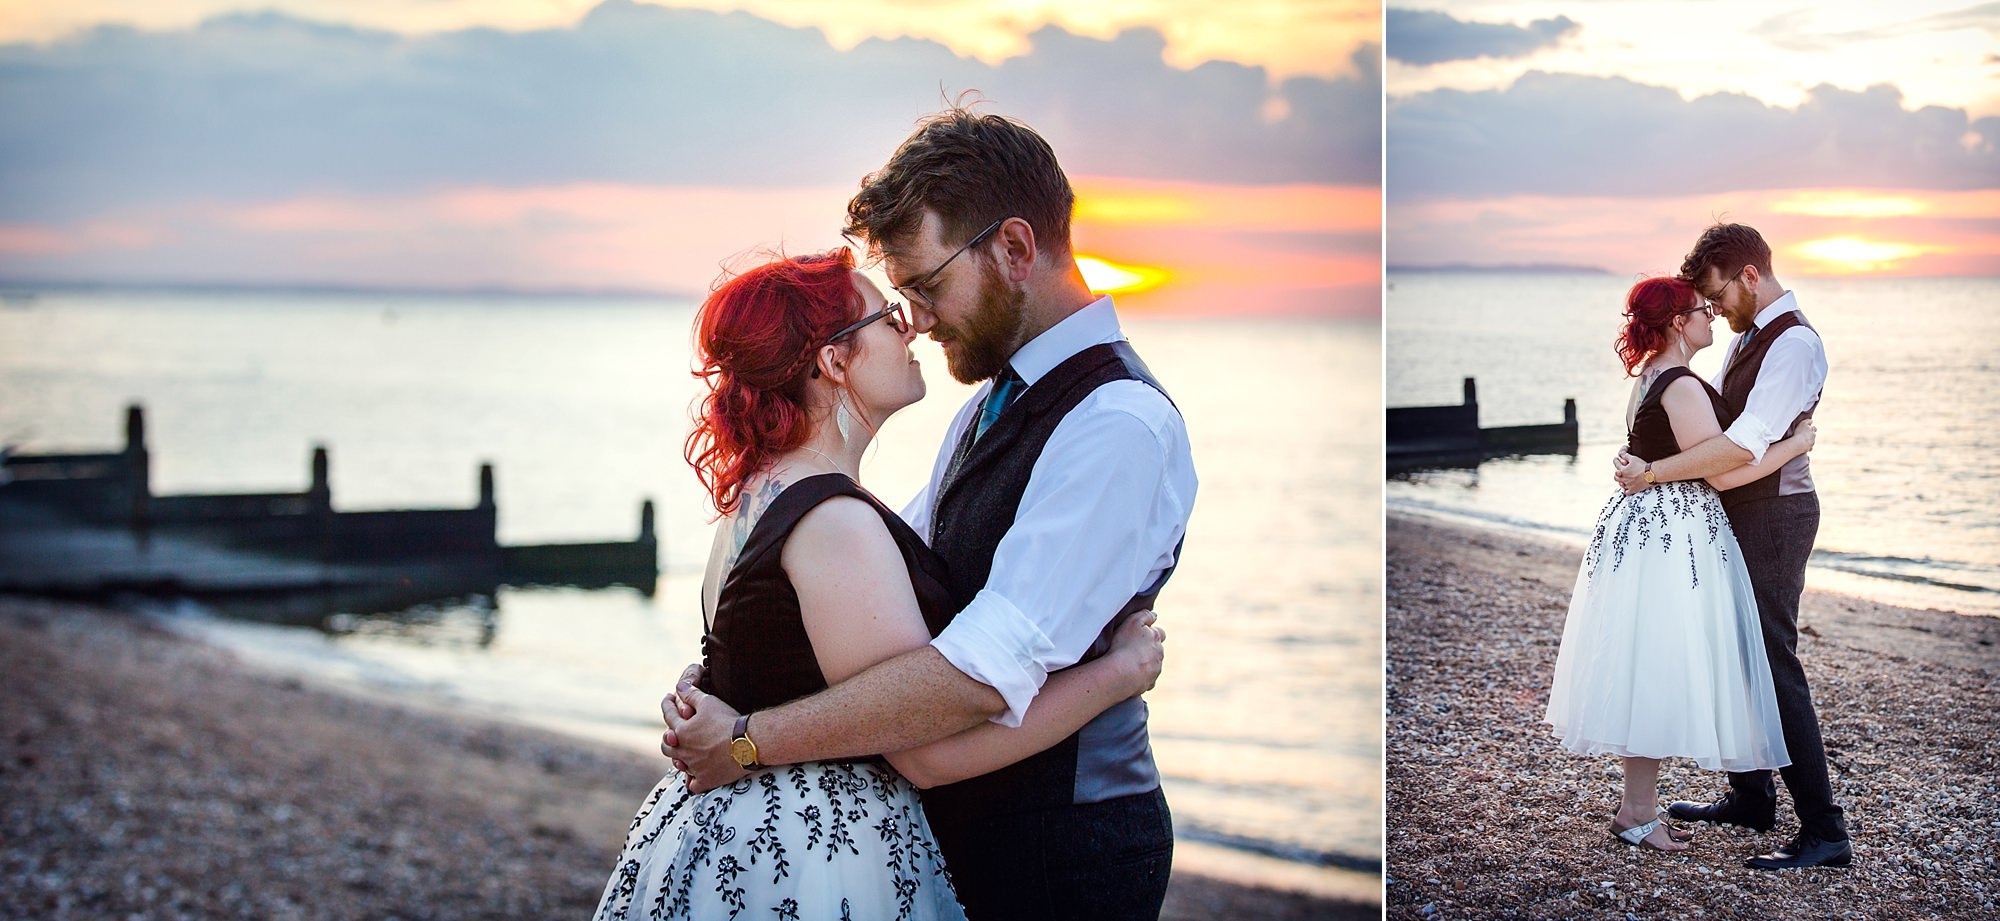 Beacon House wedding portrait of groom and bride during sunset in whitstable